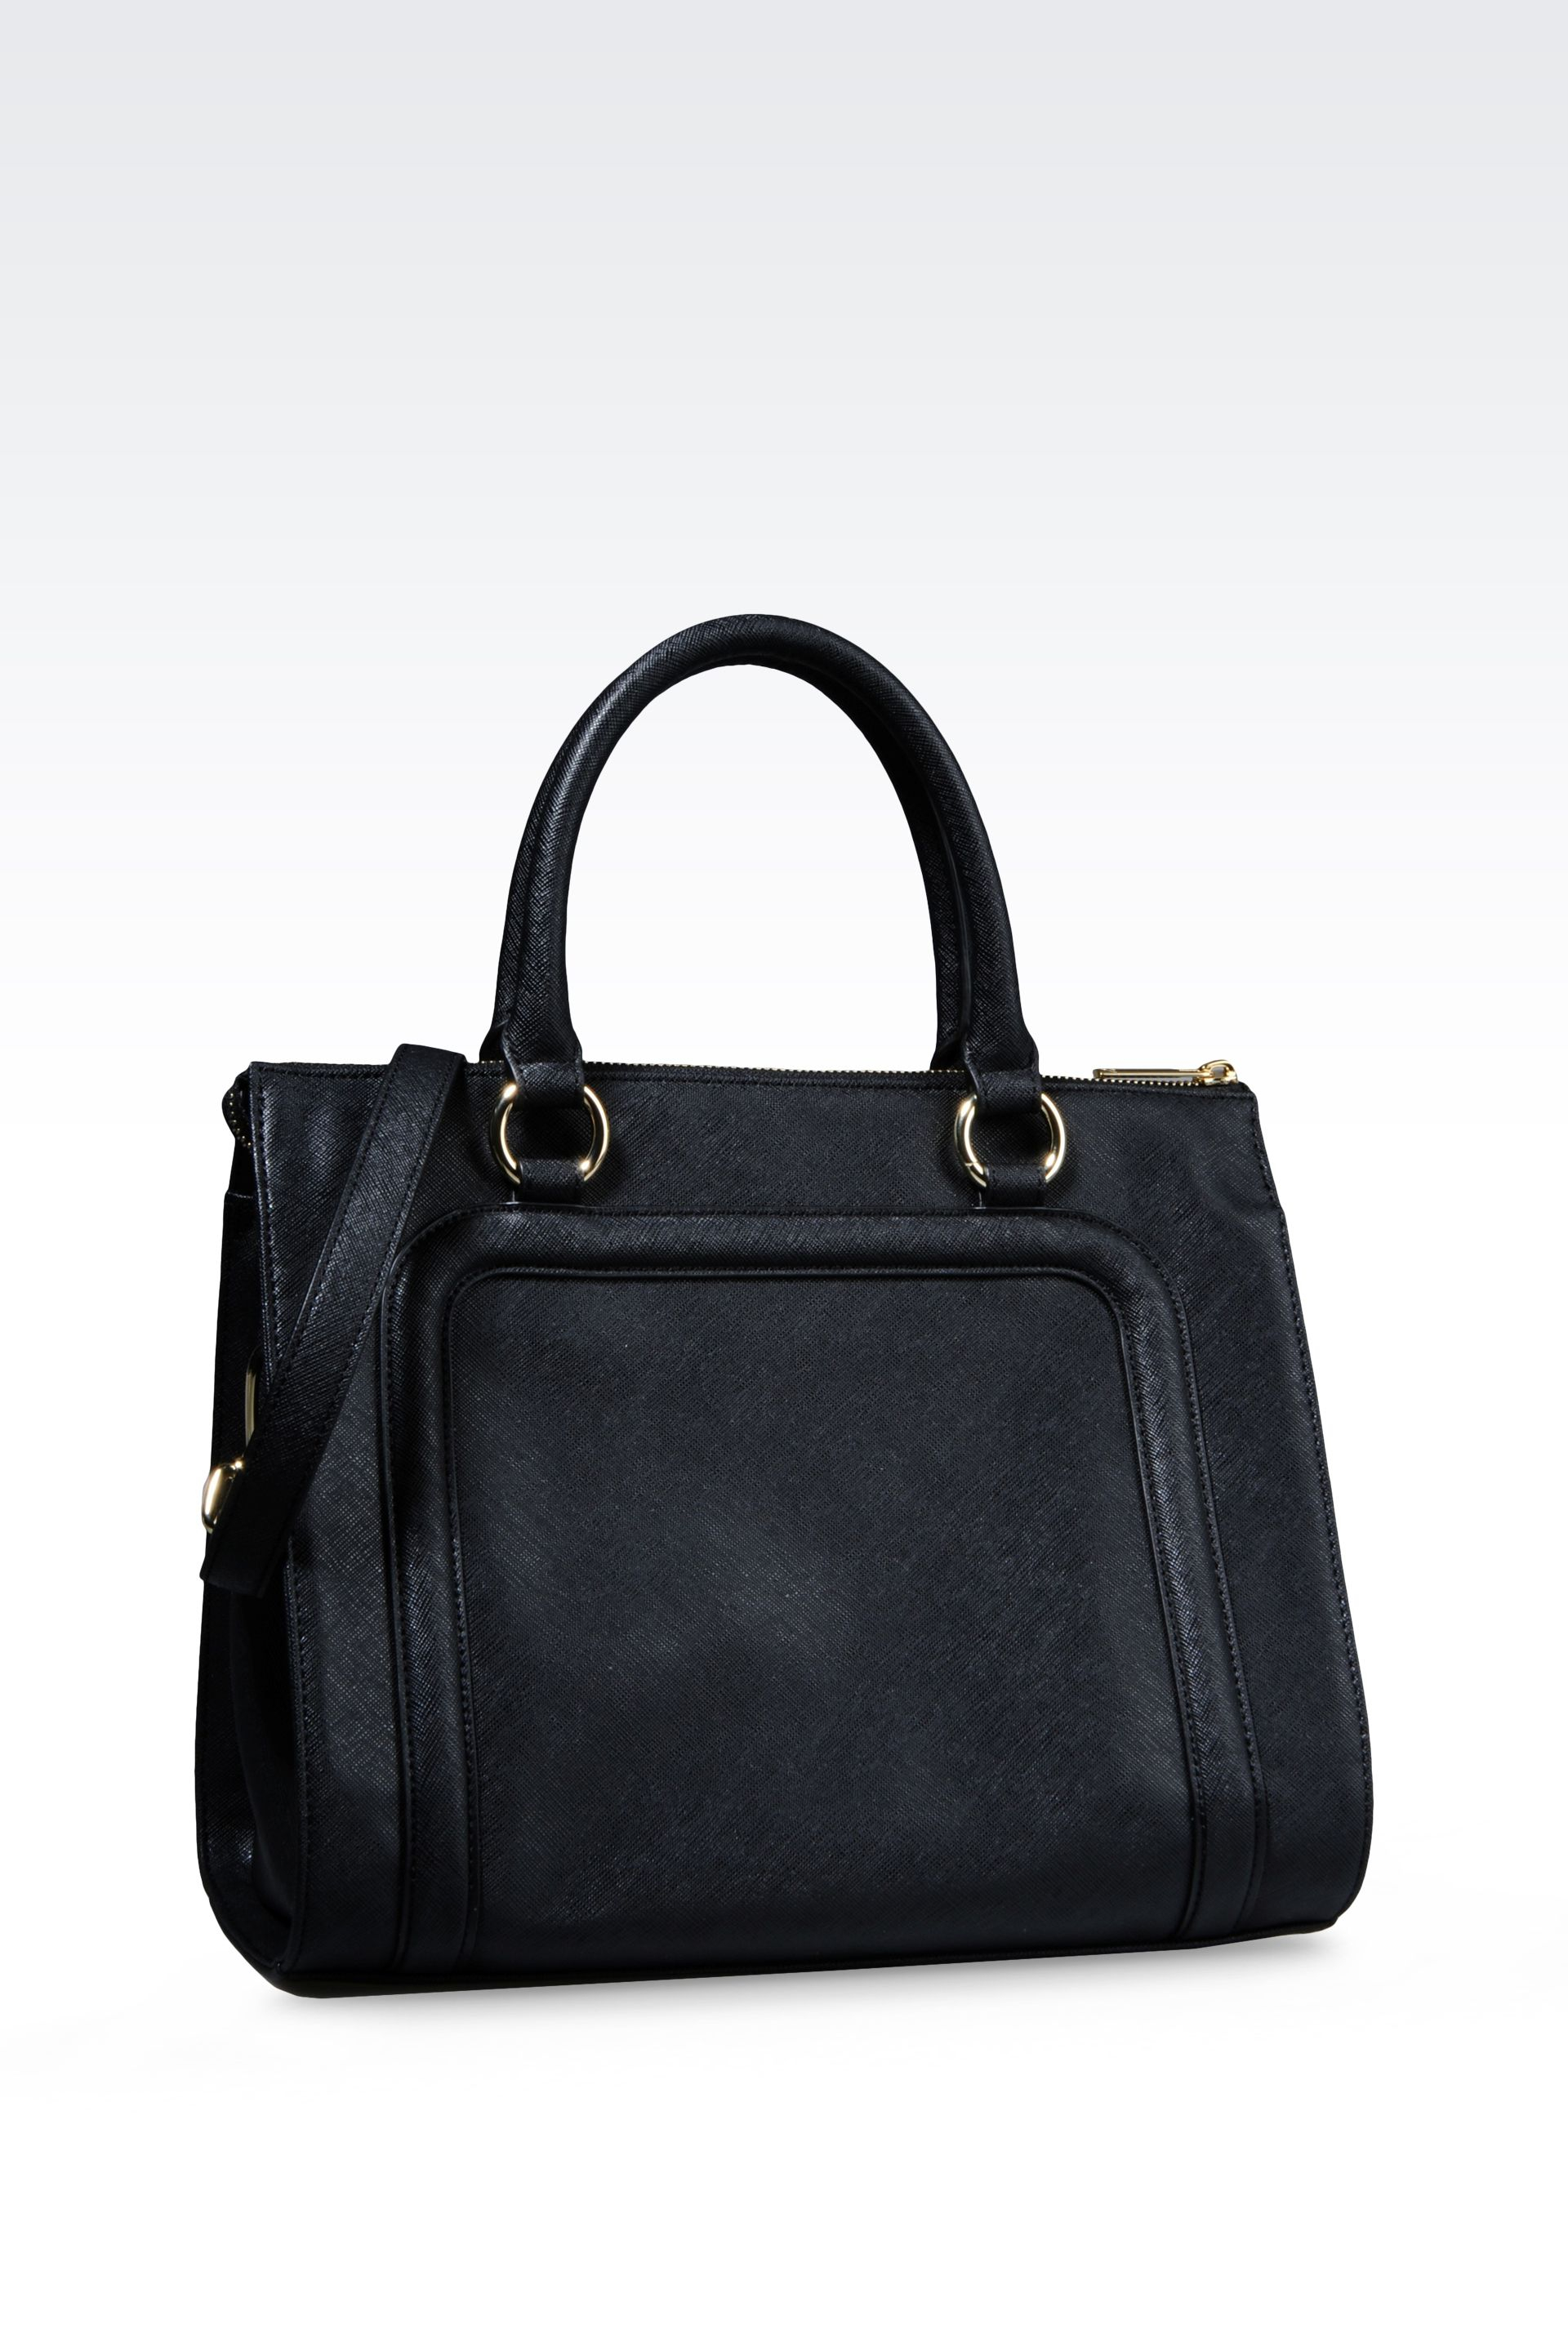 Lyst - Armani Jeans Bauletto Bag in Faux Saffiano with Tassels in Black 7974a6c10e